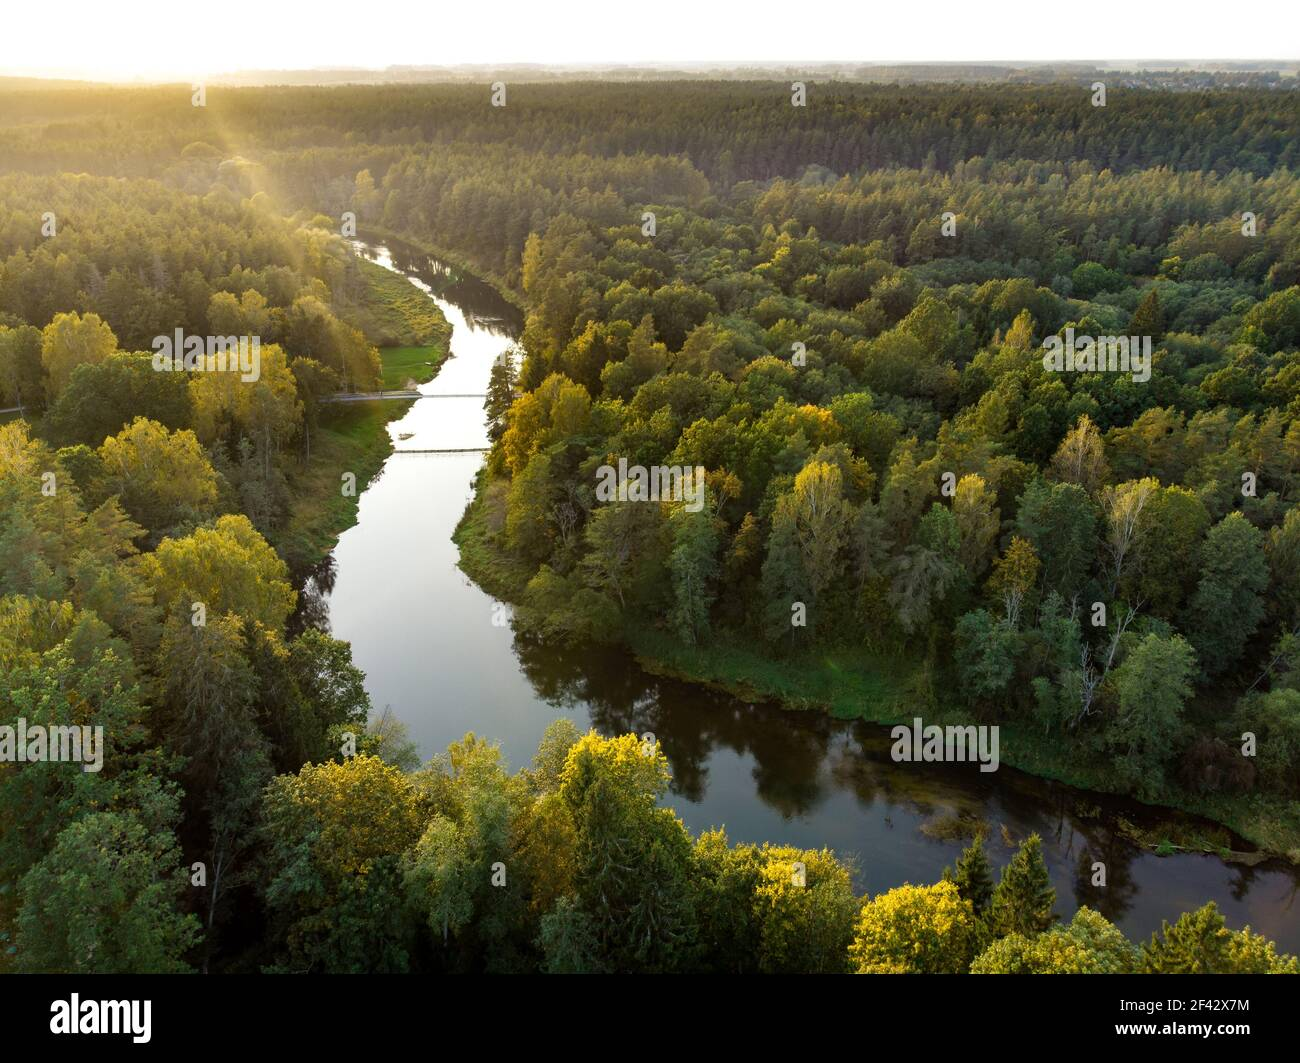 Aerial view of Laju takas, tree-canopy trail complex with a walkway, an information center and observation tower, located in Anyksciai, Lithuania Stock Photo